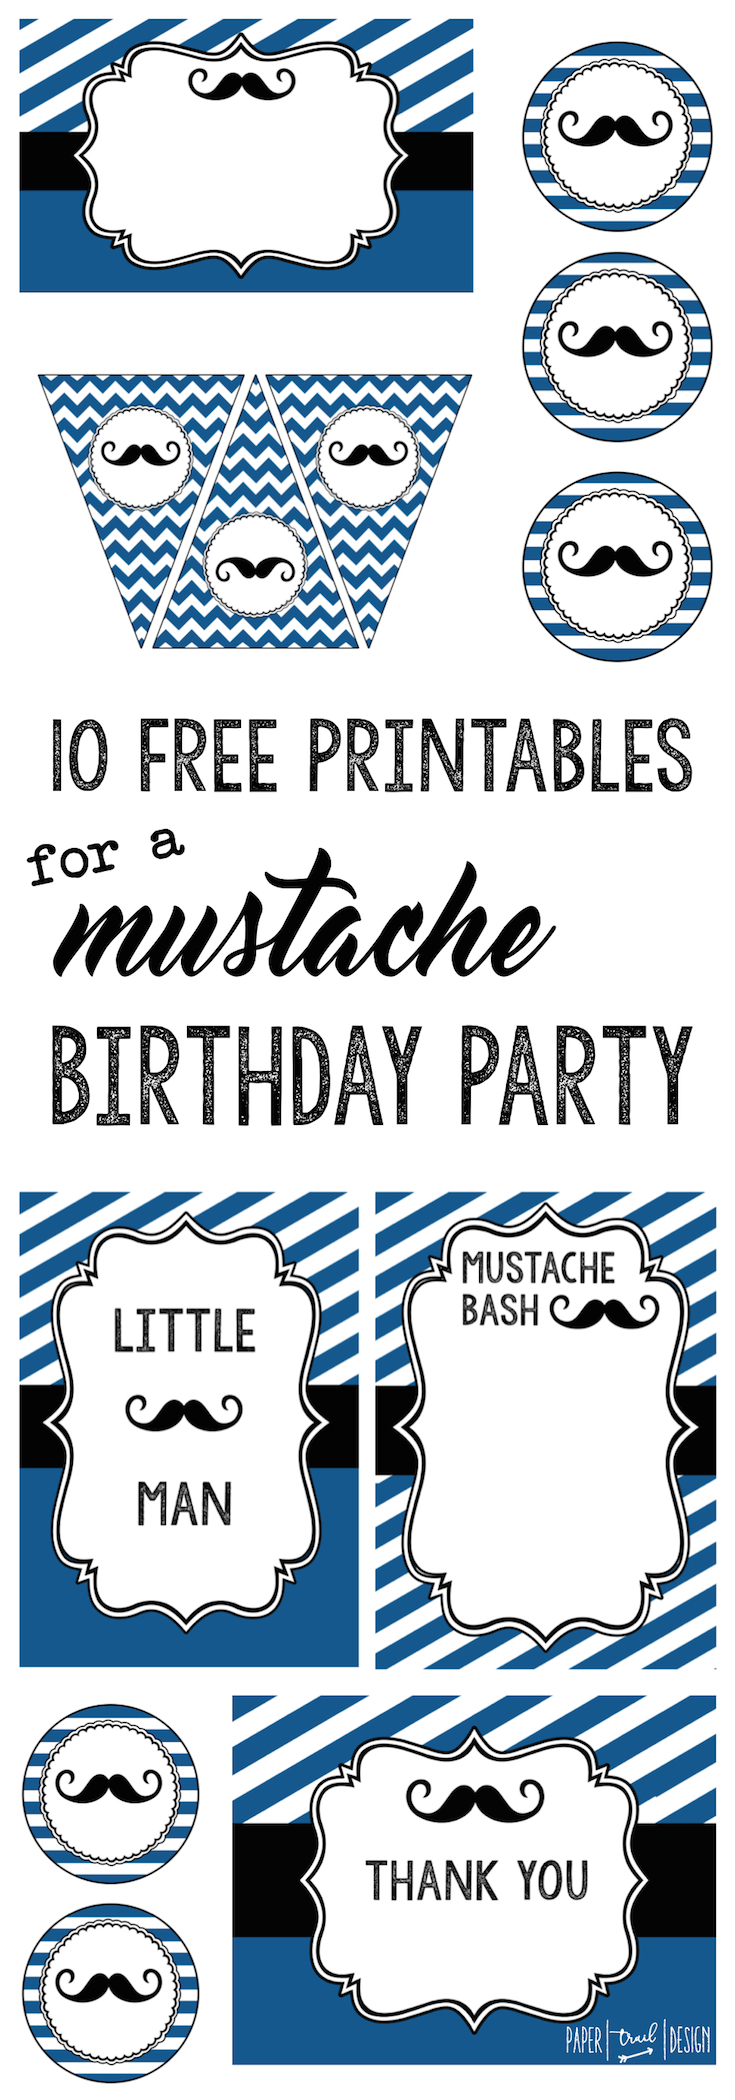 Mustache Birthday Party: Everything You Need For A Mustache Party Themed Baby  Shower Including Banner